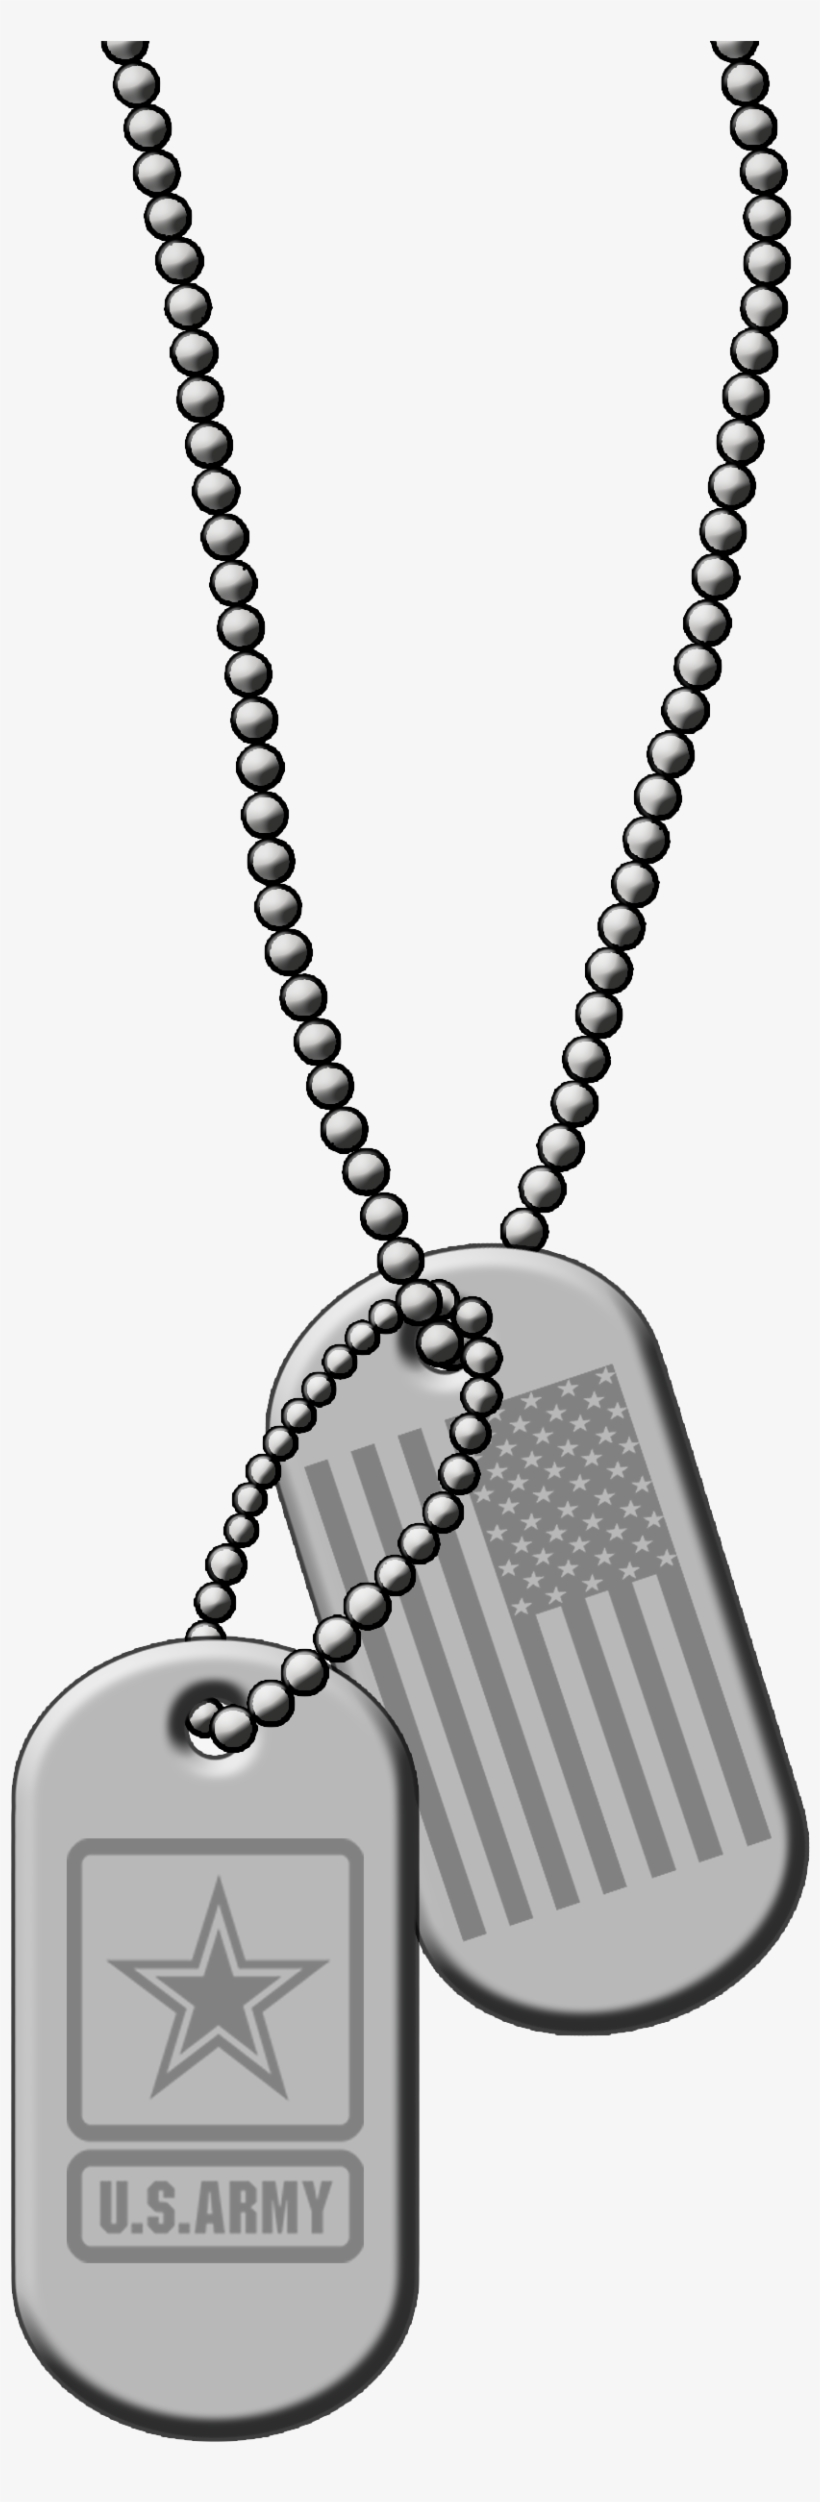 Id Dog Tags Silver Metal Png Clip Art Vector Us Army - Army